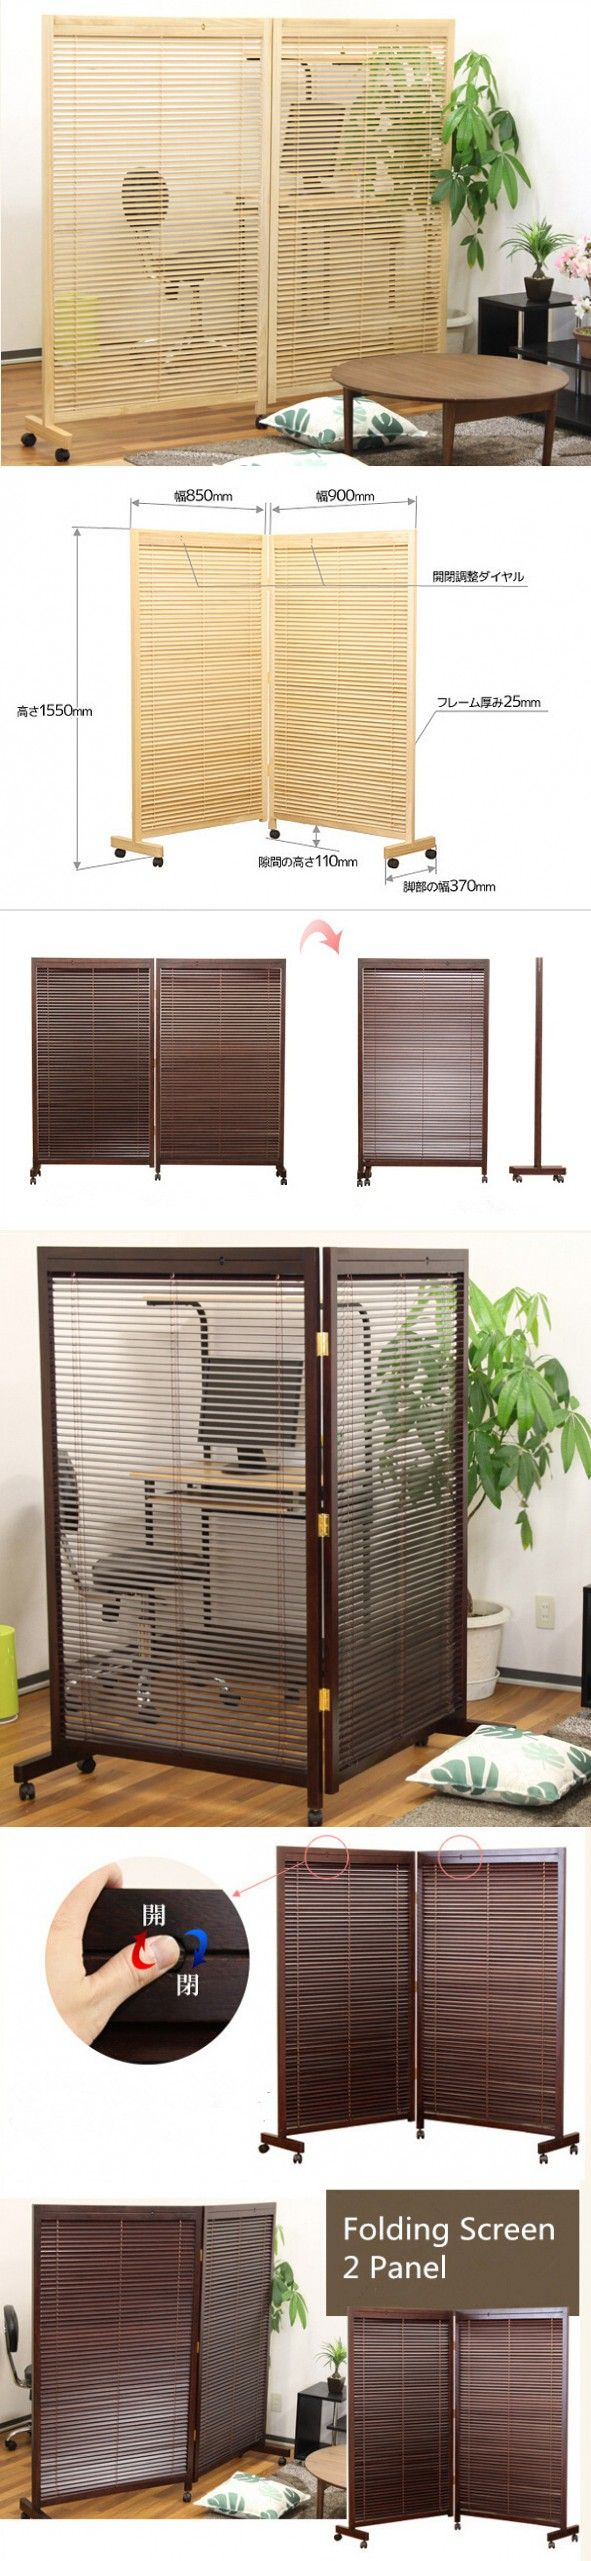 Superior Japanese Movable Wood Partition Wall 2 Panel Folding Screen Room Divider  Home Decor Oriental Decorative Portable Asian Furniture Images